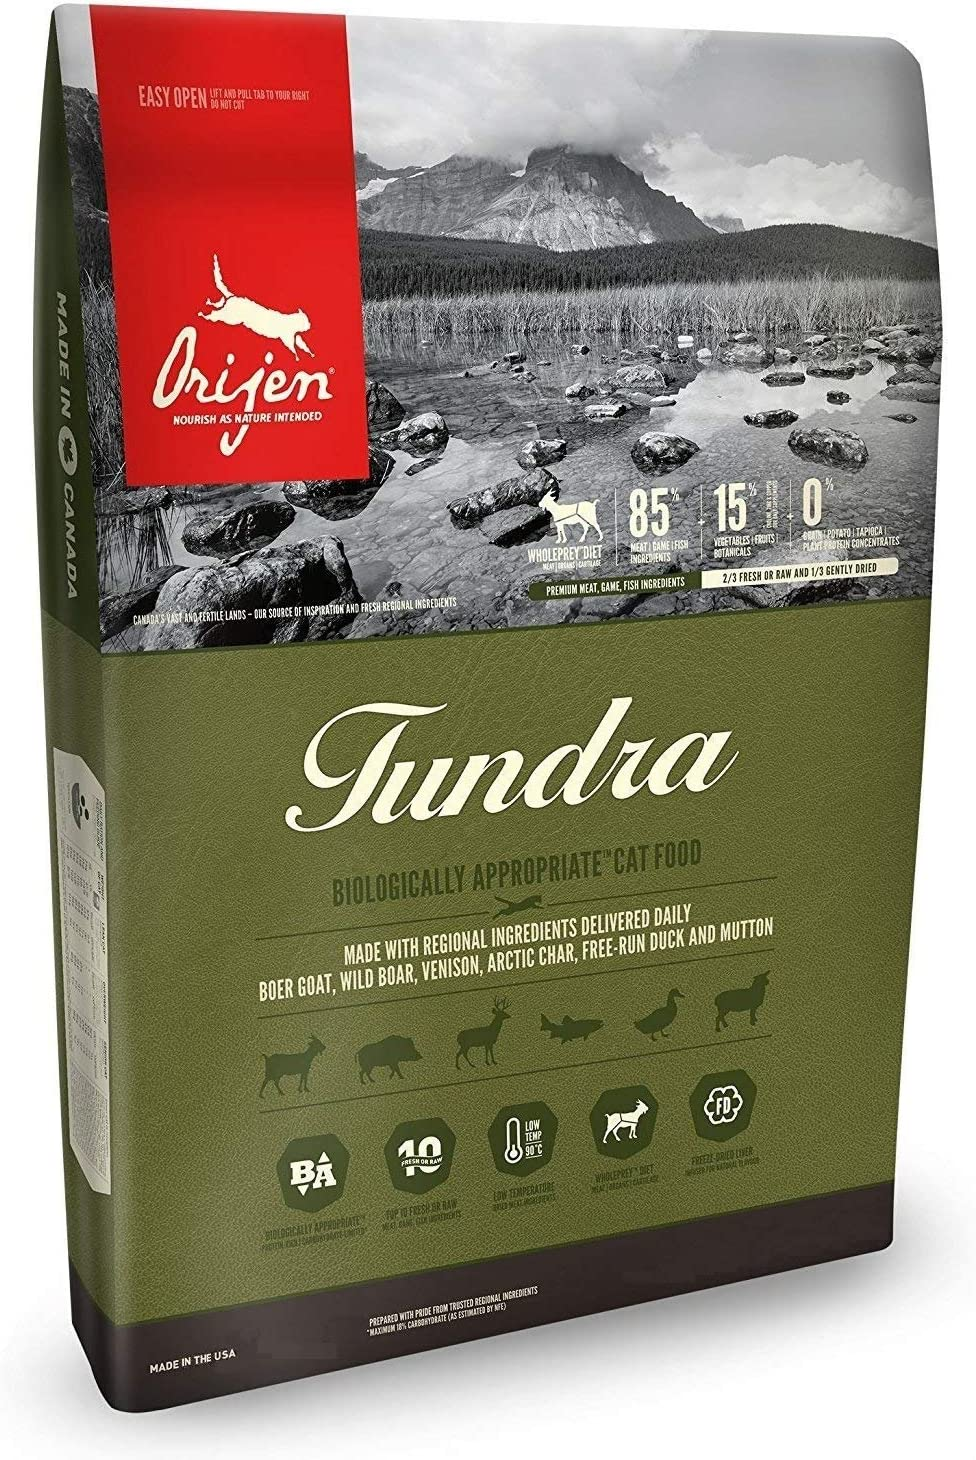 Orijen Tundra Dry Cat Food, Biologically Appropriate, 12 lb. Bag. Made with Fresh Boer Goat, Wild Boar, Venison, Arctic Char, Free-Run Duck & Mutton. Fast Delivery, by Just Jak's Pet Market